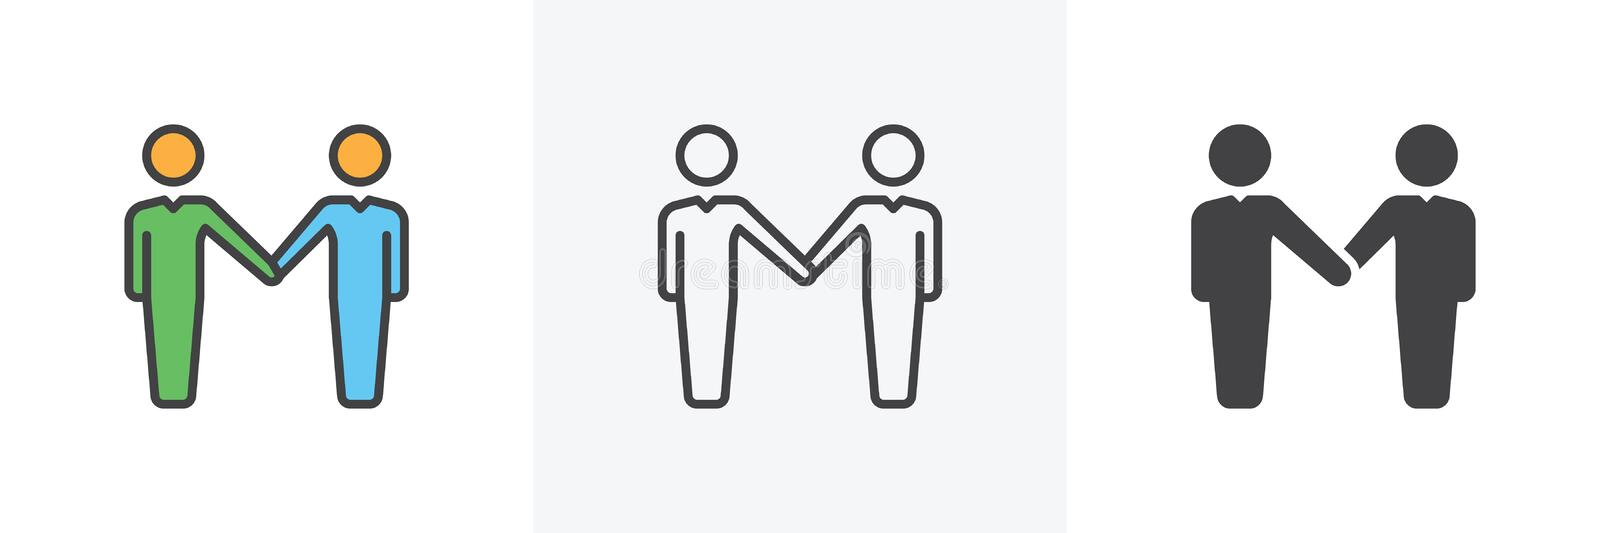 Businessman Handshake icon vector illustration